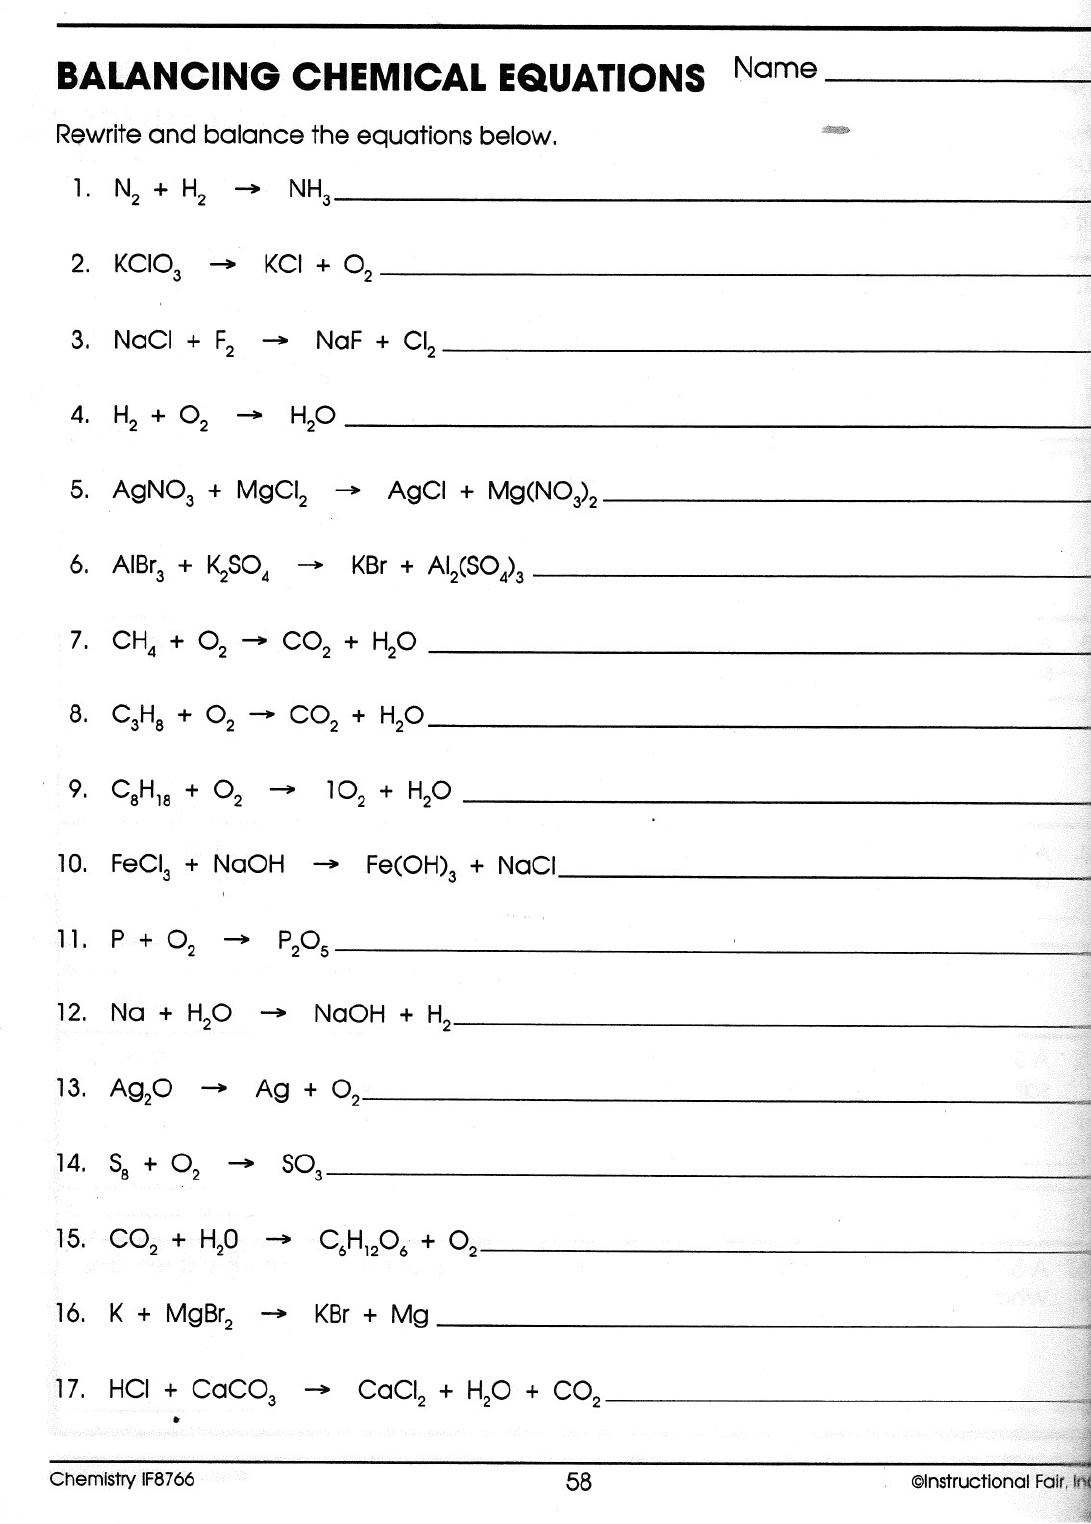 Balancing Equations Worksheet Physical Science If